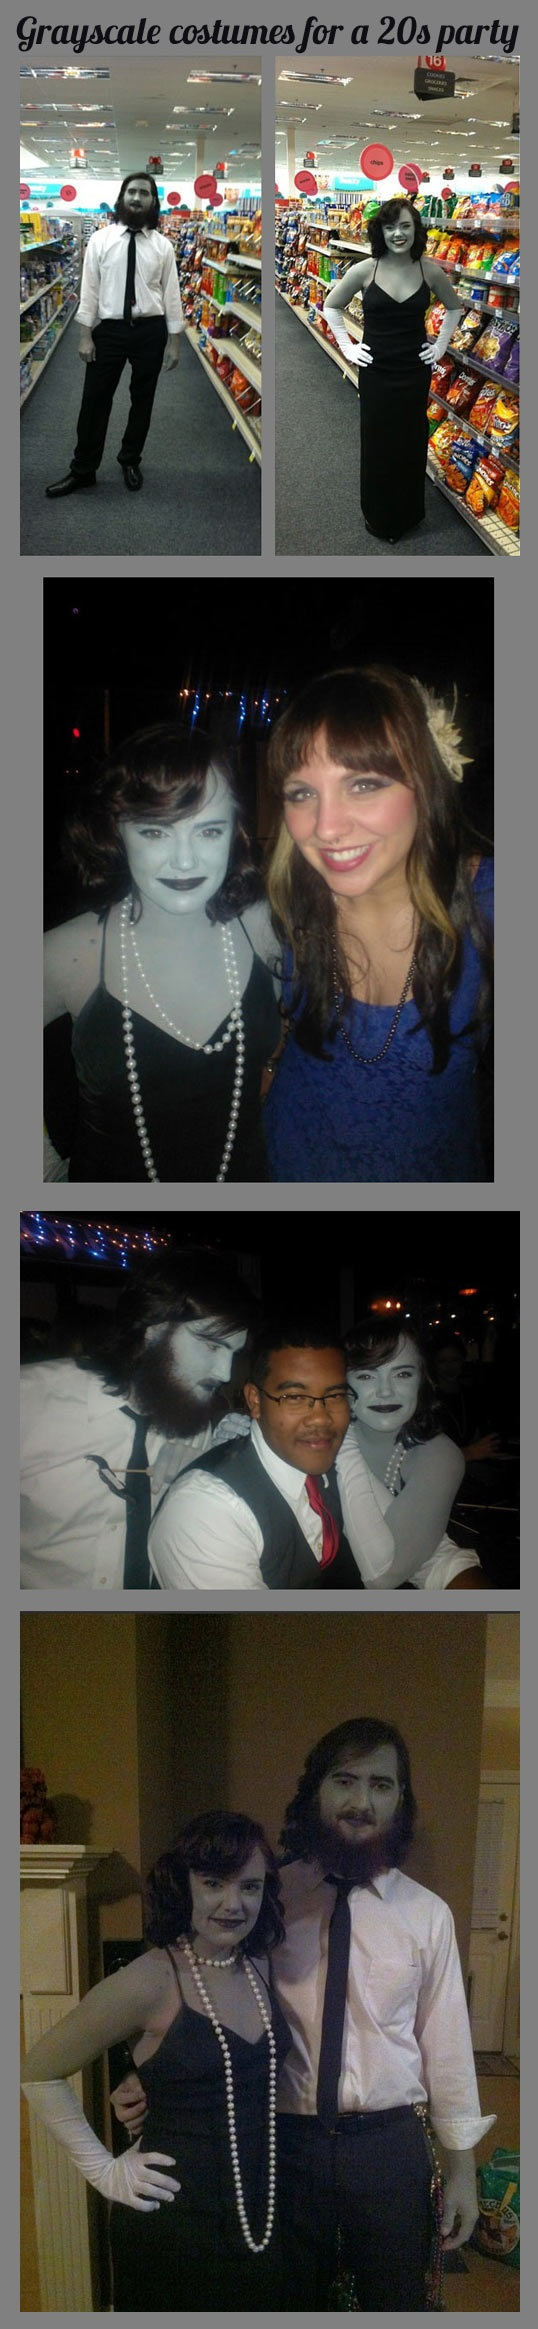 funny-Halloween-grayscale-costumes-20s-party